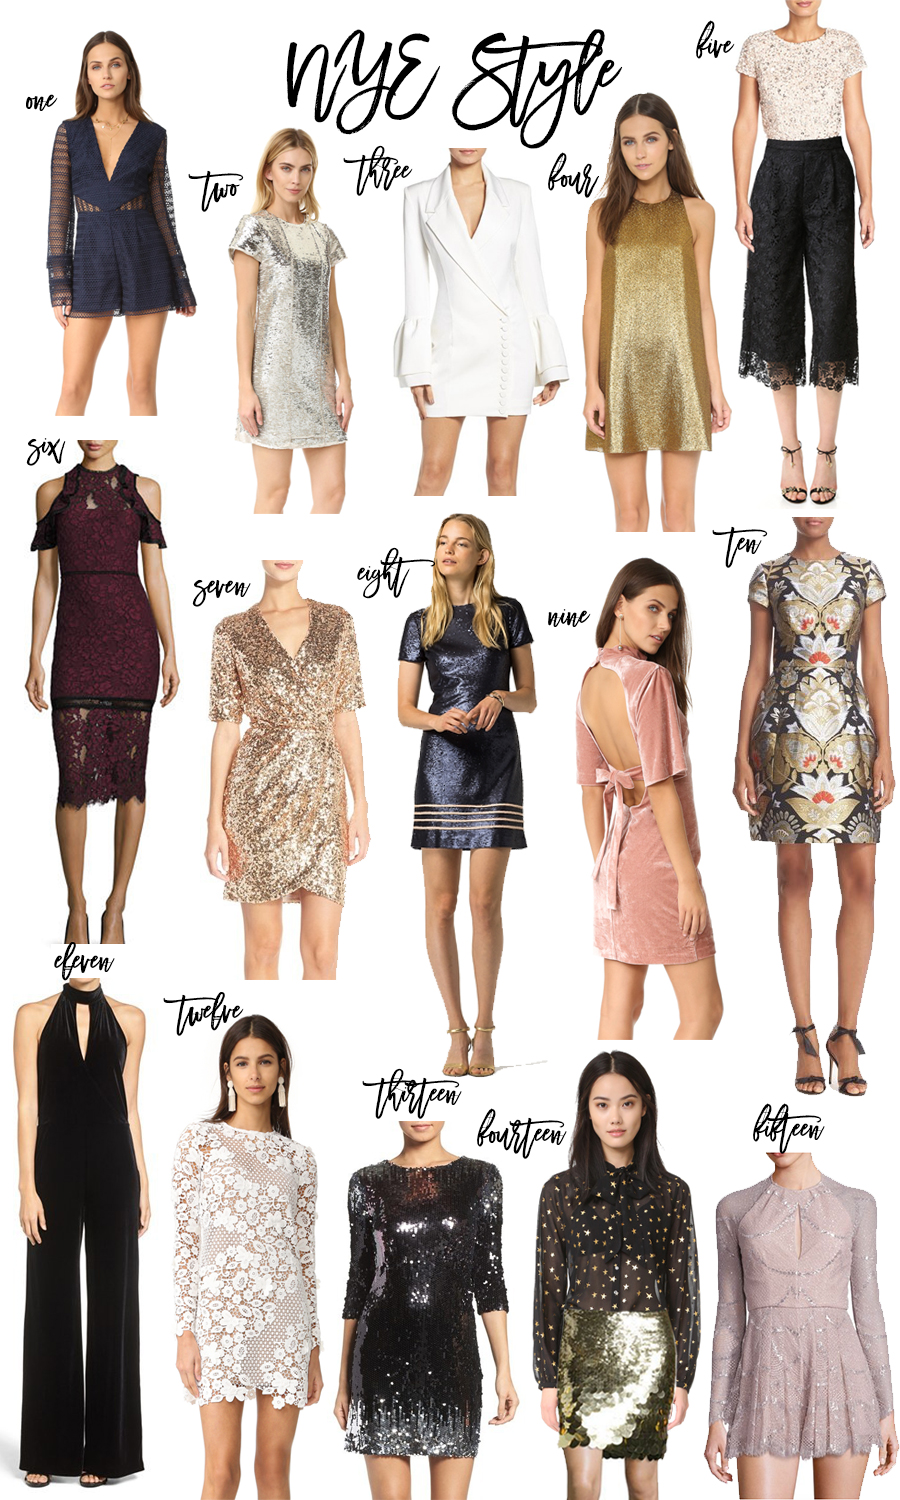 15-fabulous-nye-outfits-nye-style-have-need-want